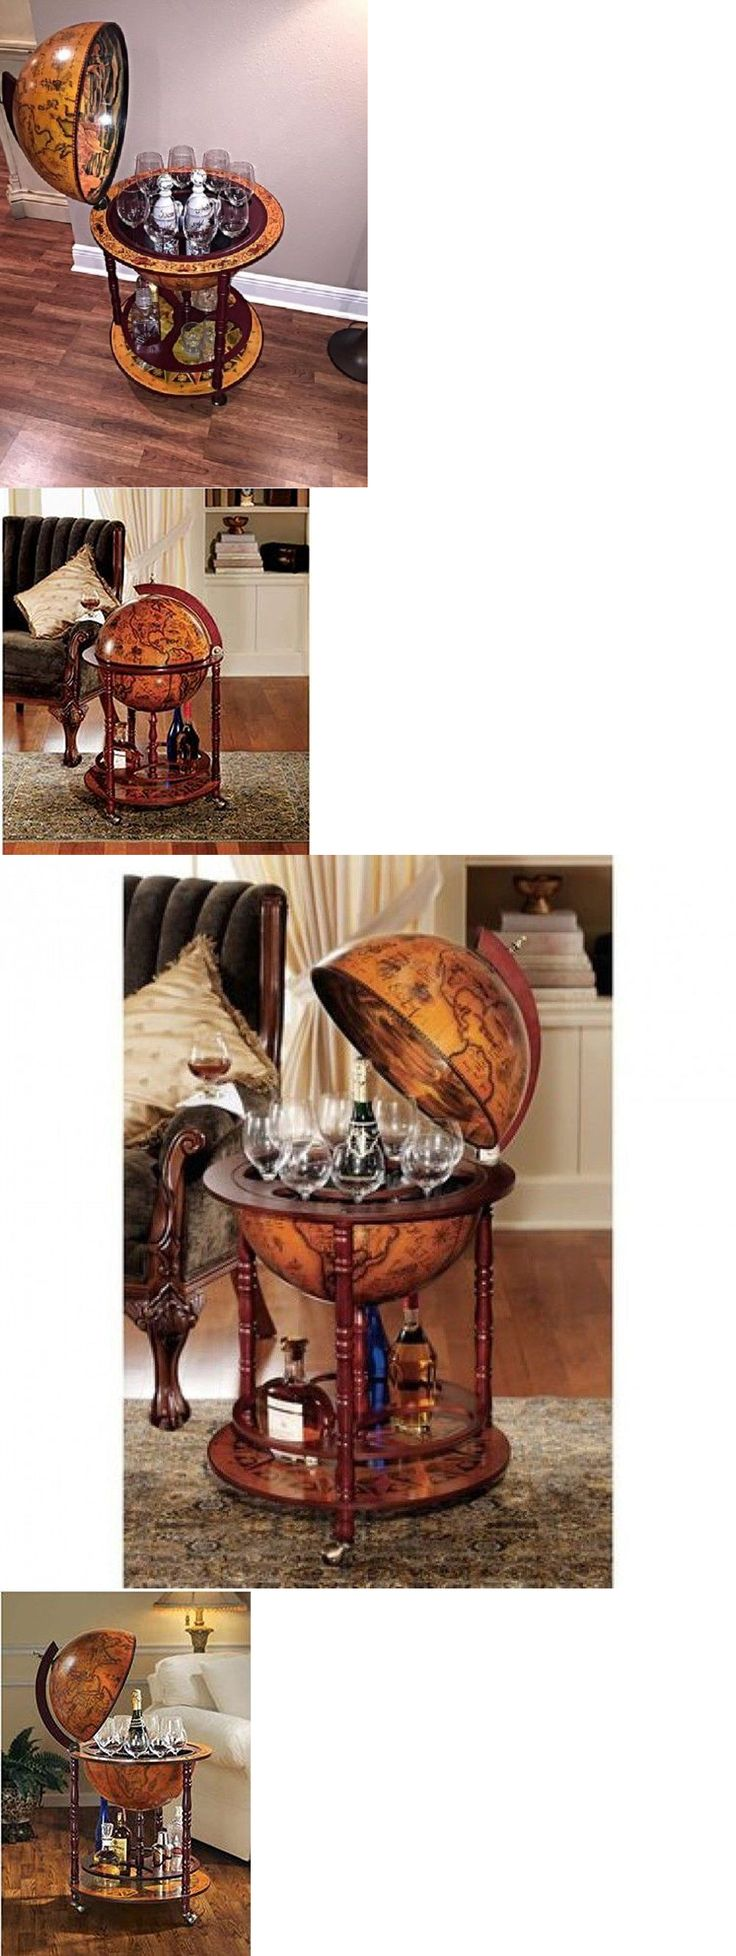 Home Pubs and Bars 115713: Wine Storage Cabinet Globe Rack Bar Furniture Whiskey Alcohol Liquor Shelf World -> BUY IT NOW ONLY: $161.47 on eBay!